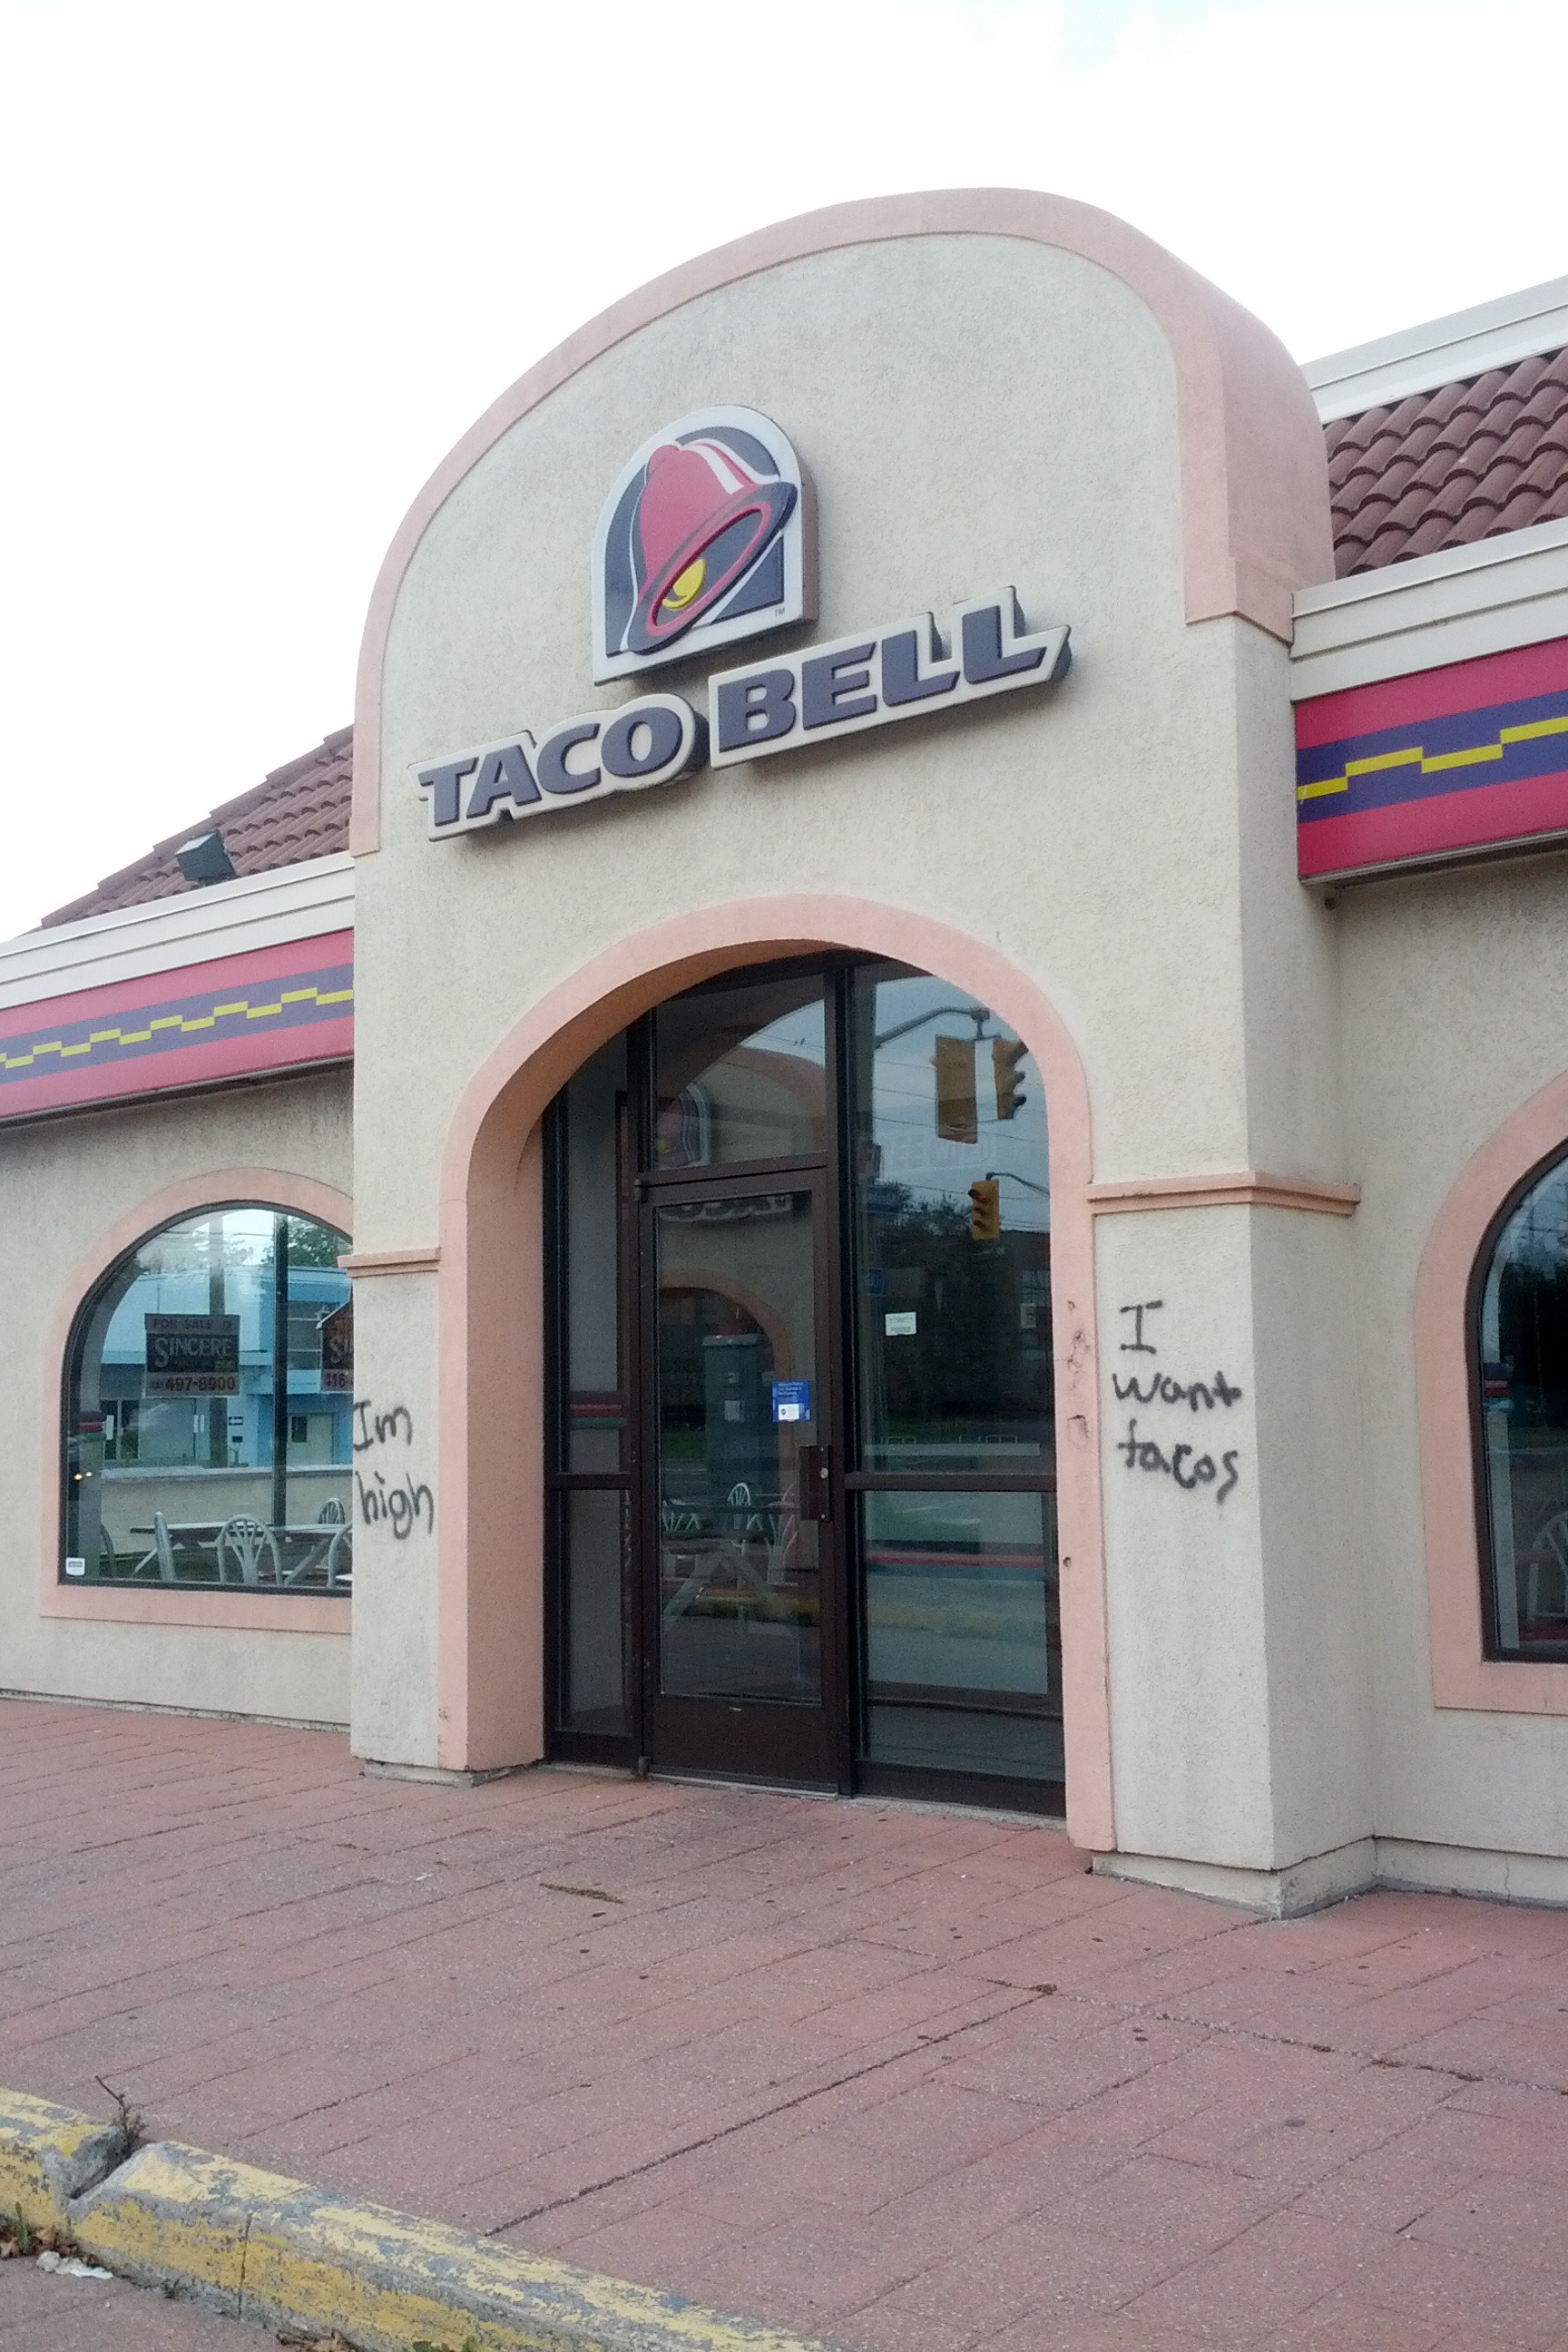 Someone was bummed that their Taco Bell closed down. So they spray-painted a little message.